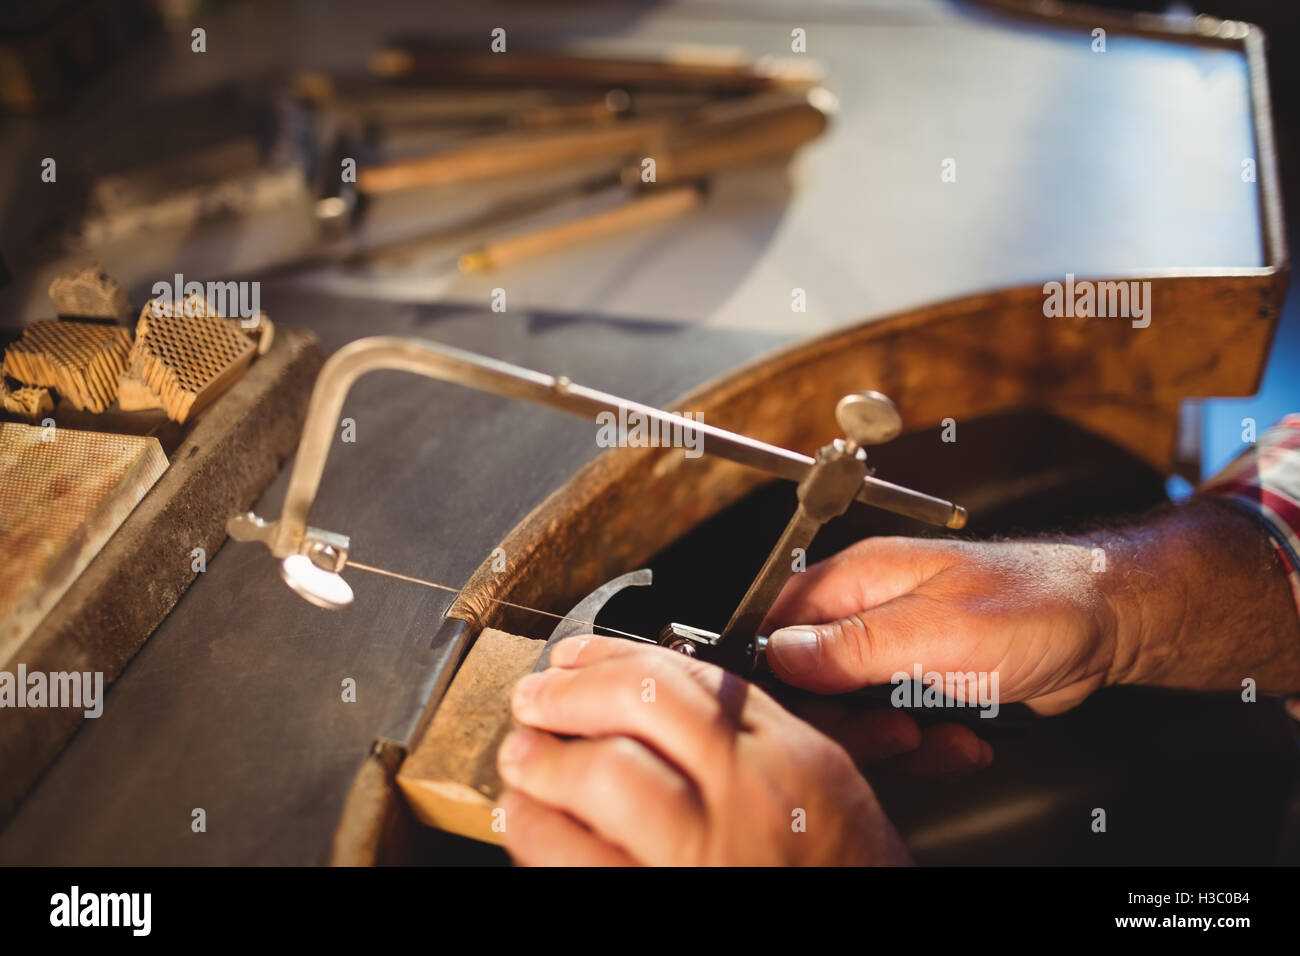 Goldsmith shaping metal with coping saw - Stock Image